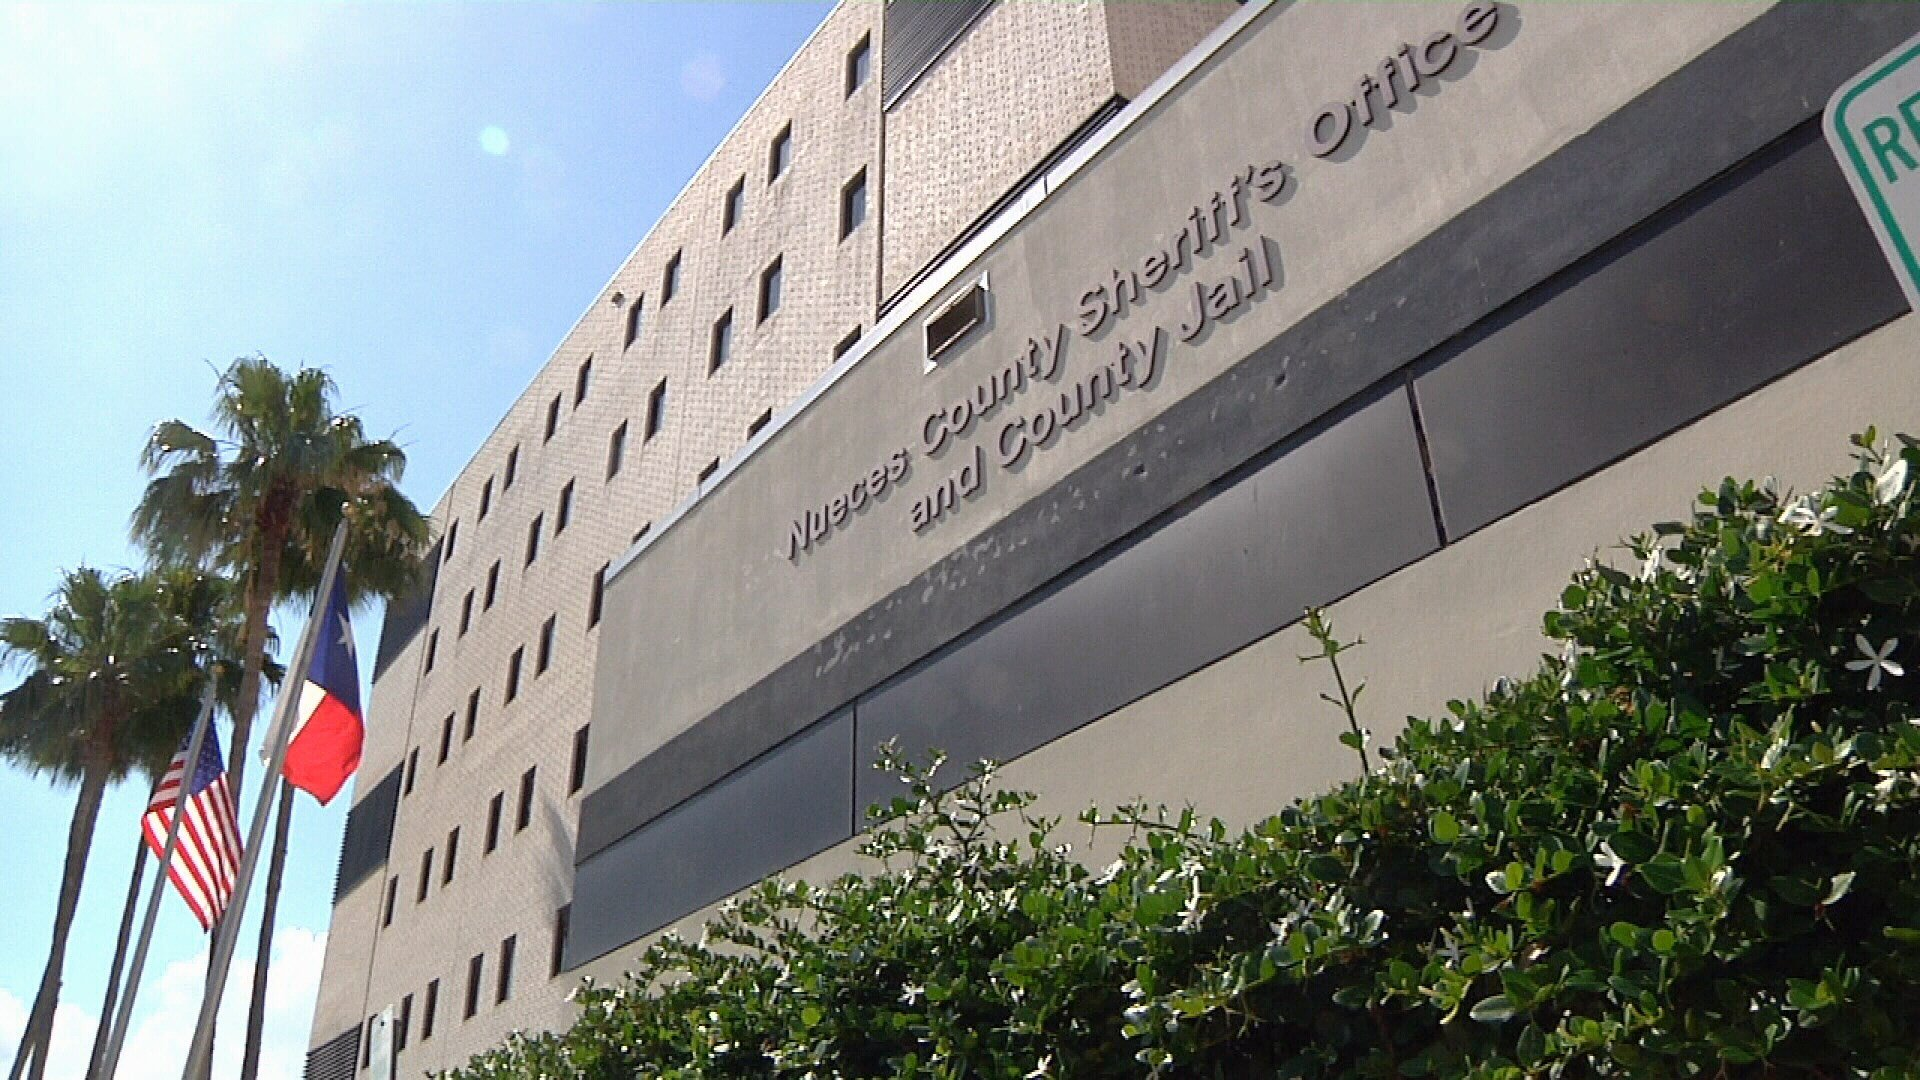 Federal inmates are moving out of the Nueces County jail after state inspectors found inmates were staying in holding cells far too long.